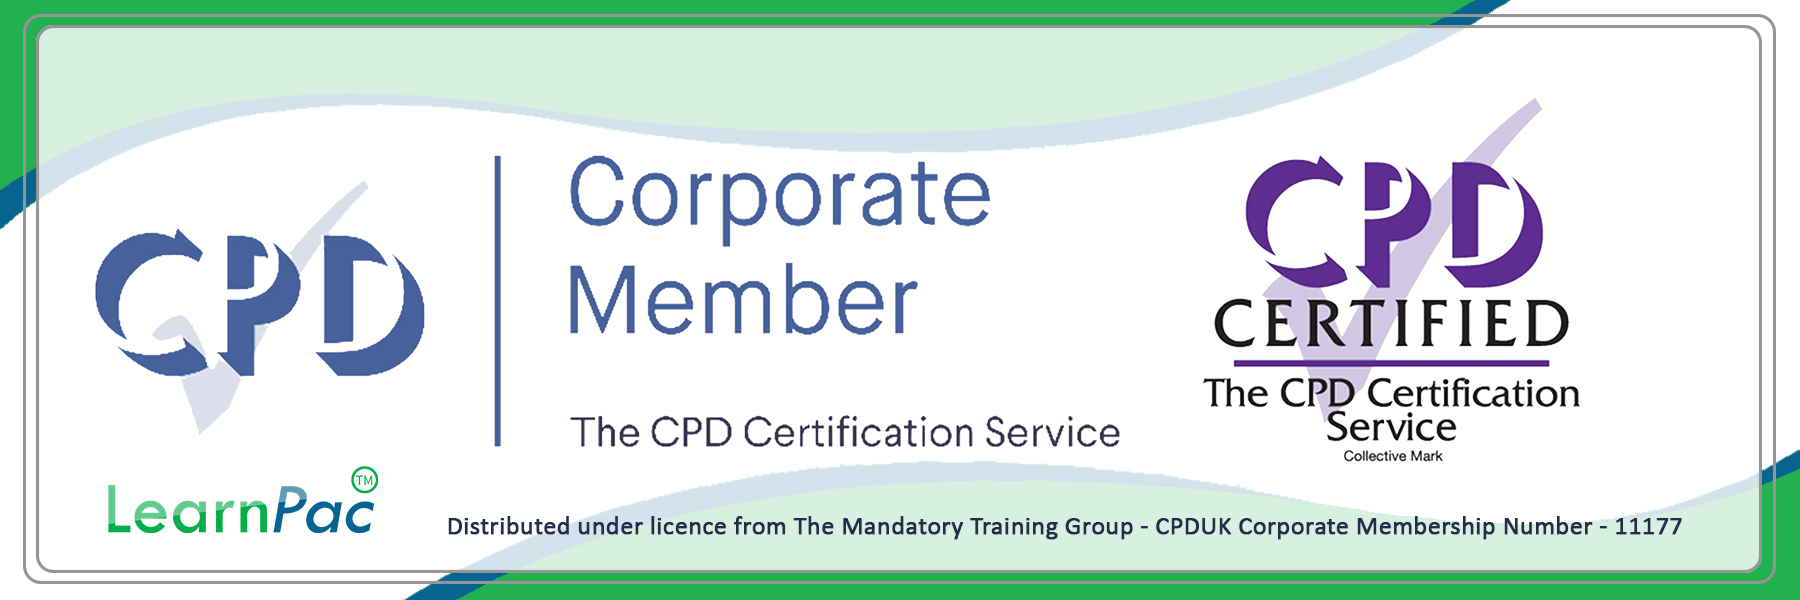 Care Planning Training - E-Learning Courses with Certificates - CPD Certified - LearnPac Systems UK -